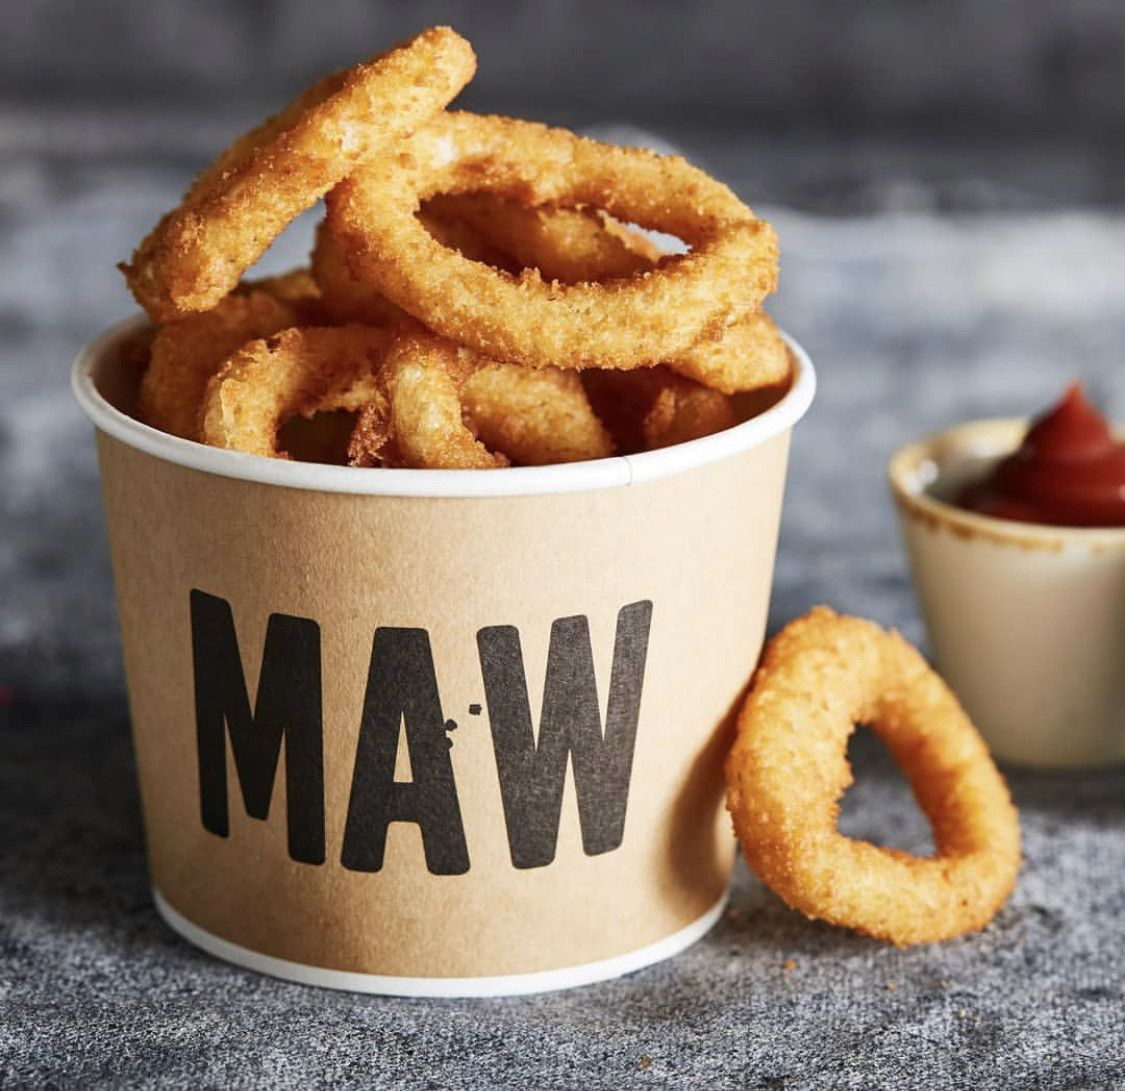 MAW Handcrafted Gourmet Burger 7